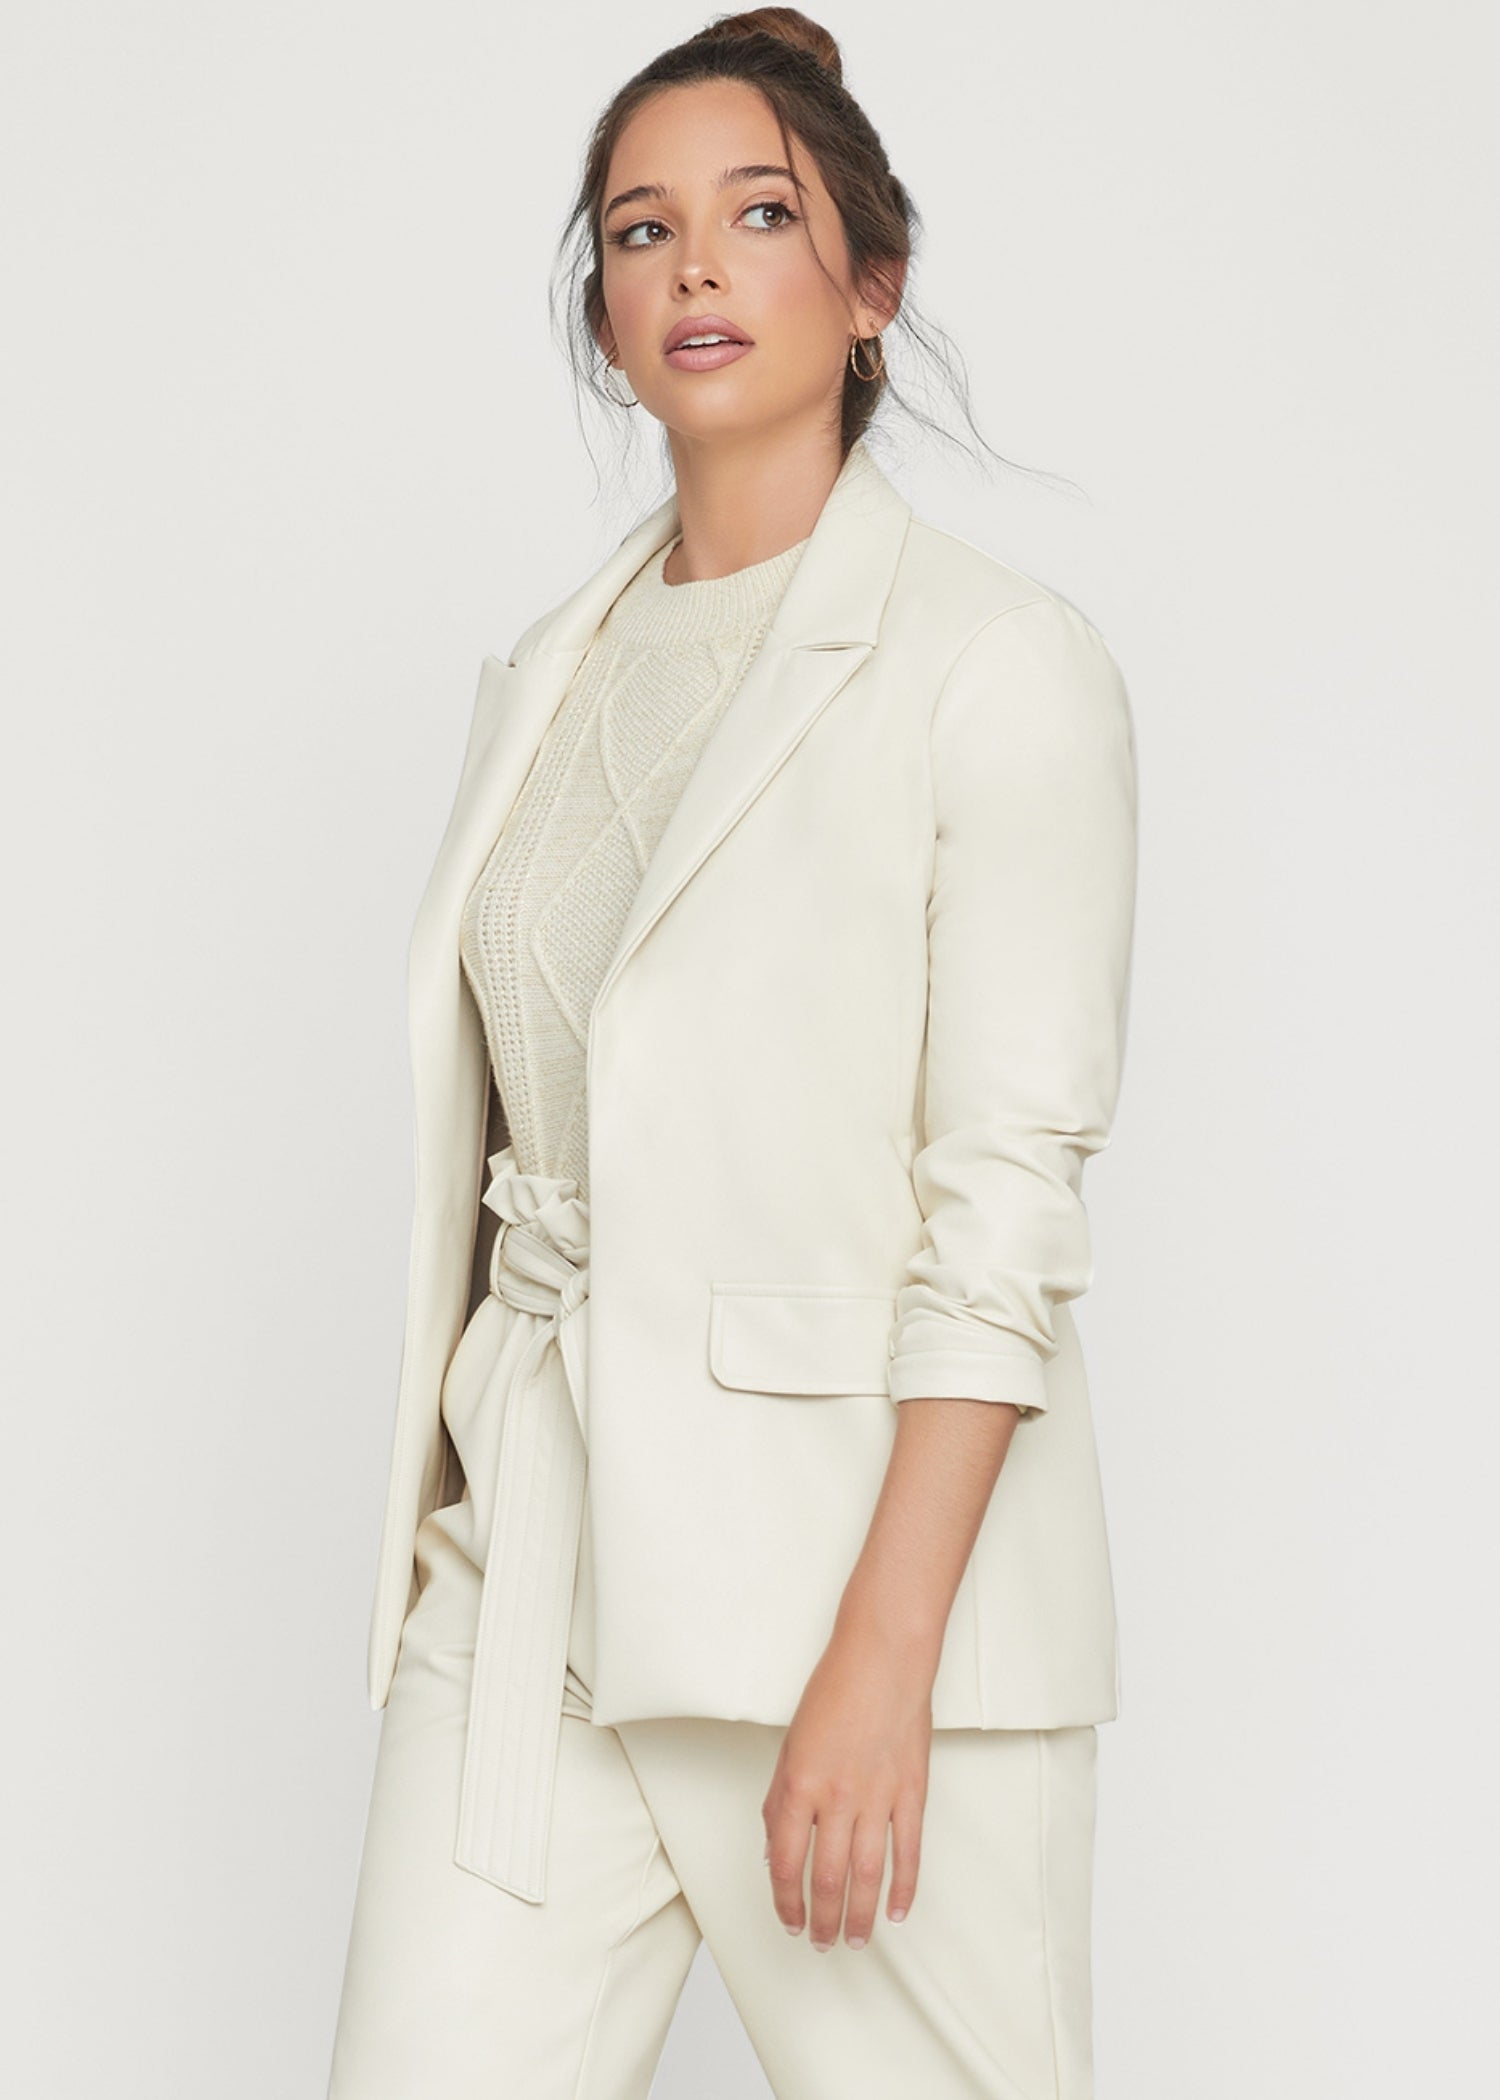 Champagne Stories Blazer